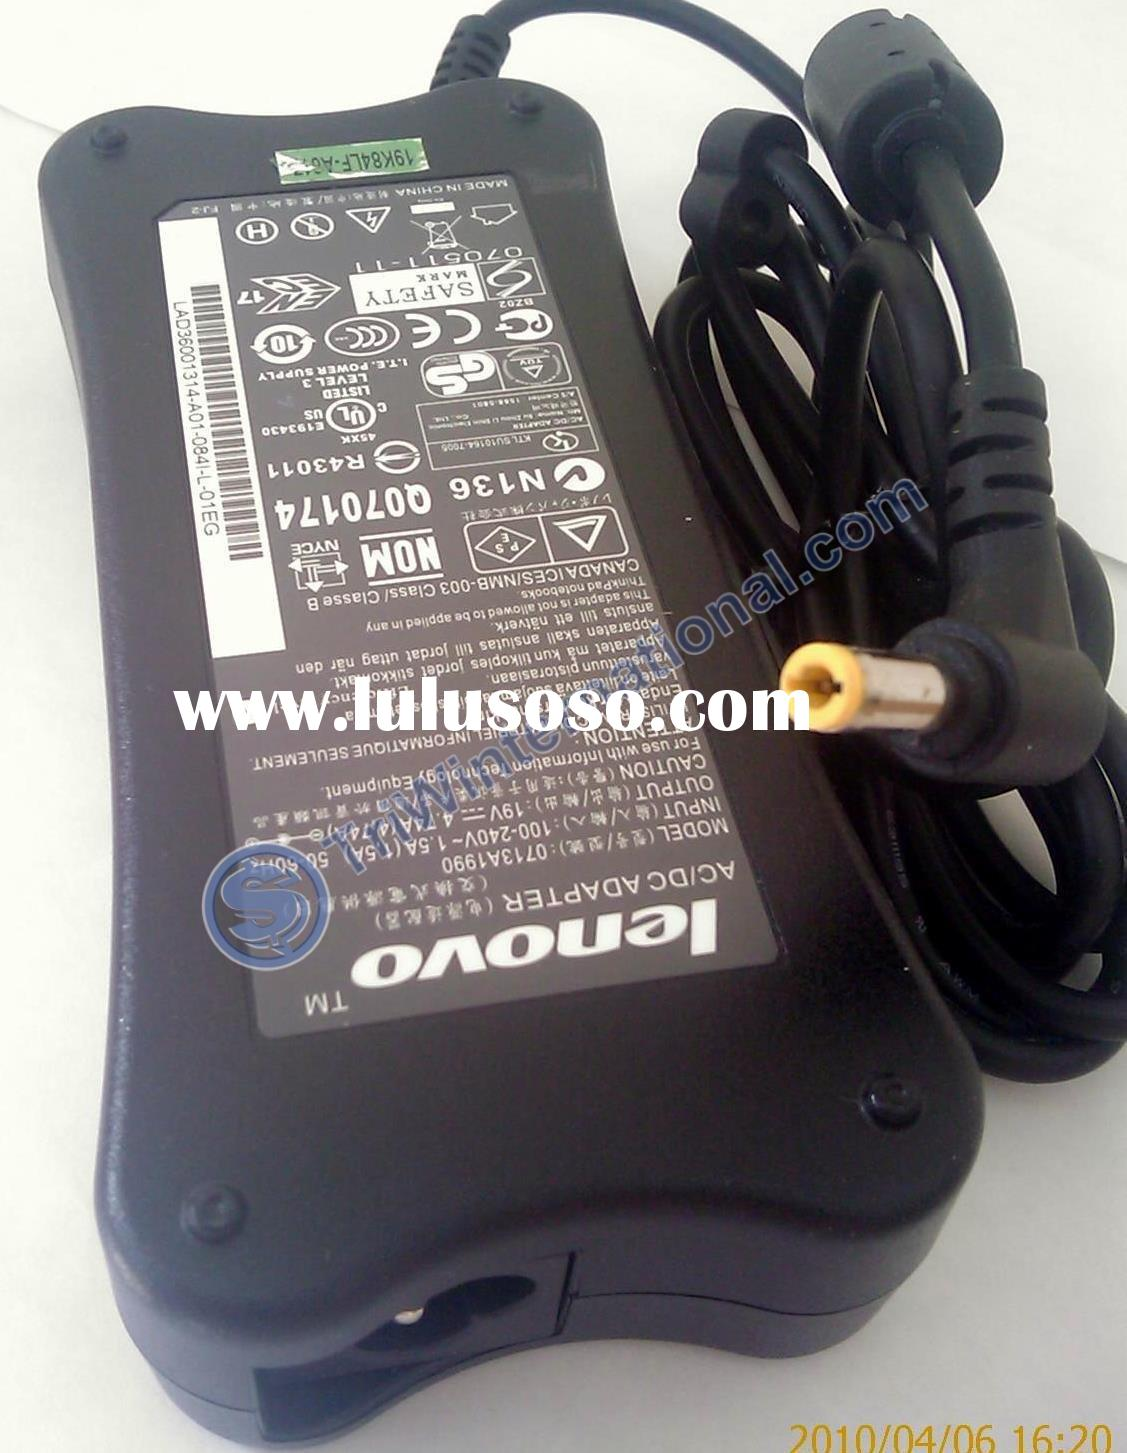 Original AC Power Adapter Charger for Lenovo 3000 Y500 series Notebook PC - 00933